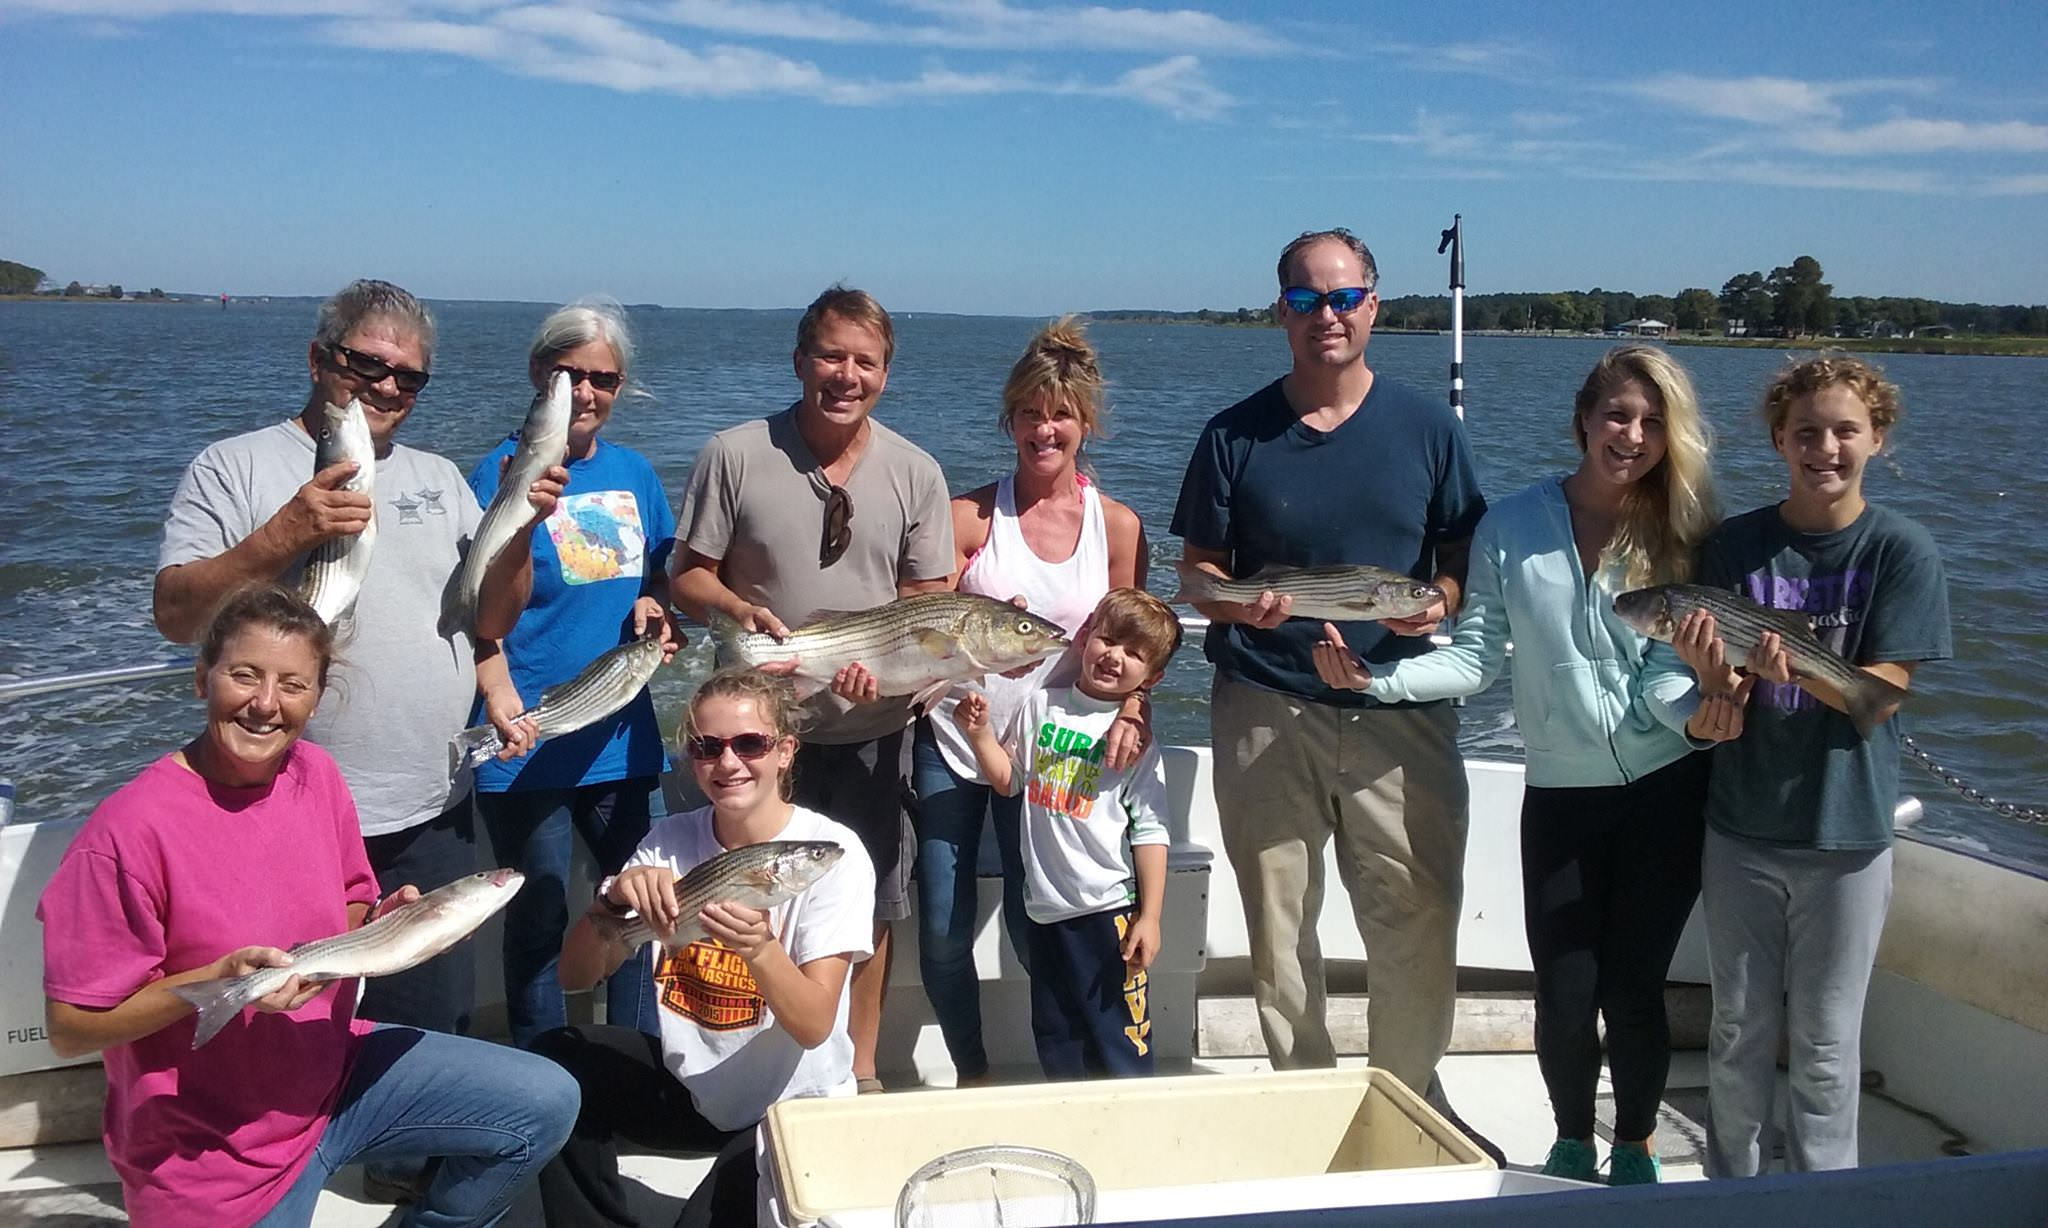 More Great Rockfishing Action On The Chesapeake Bay!